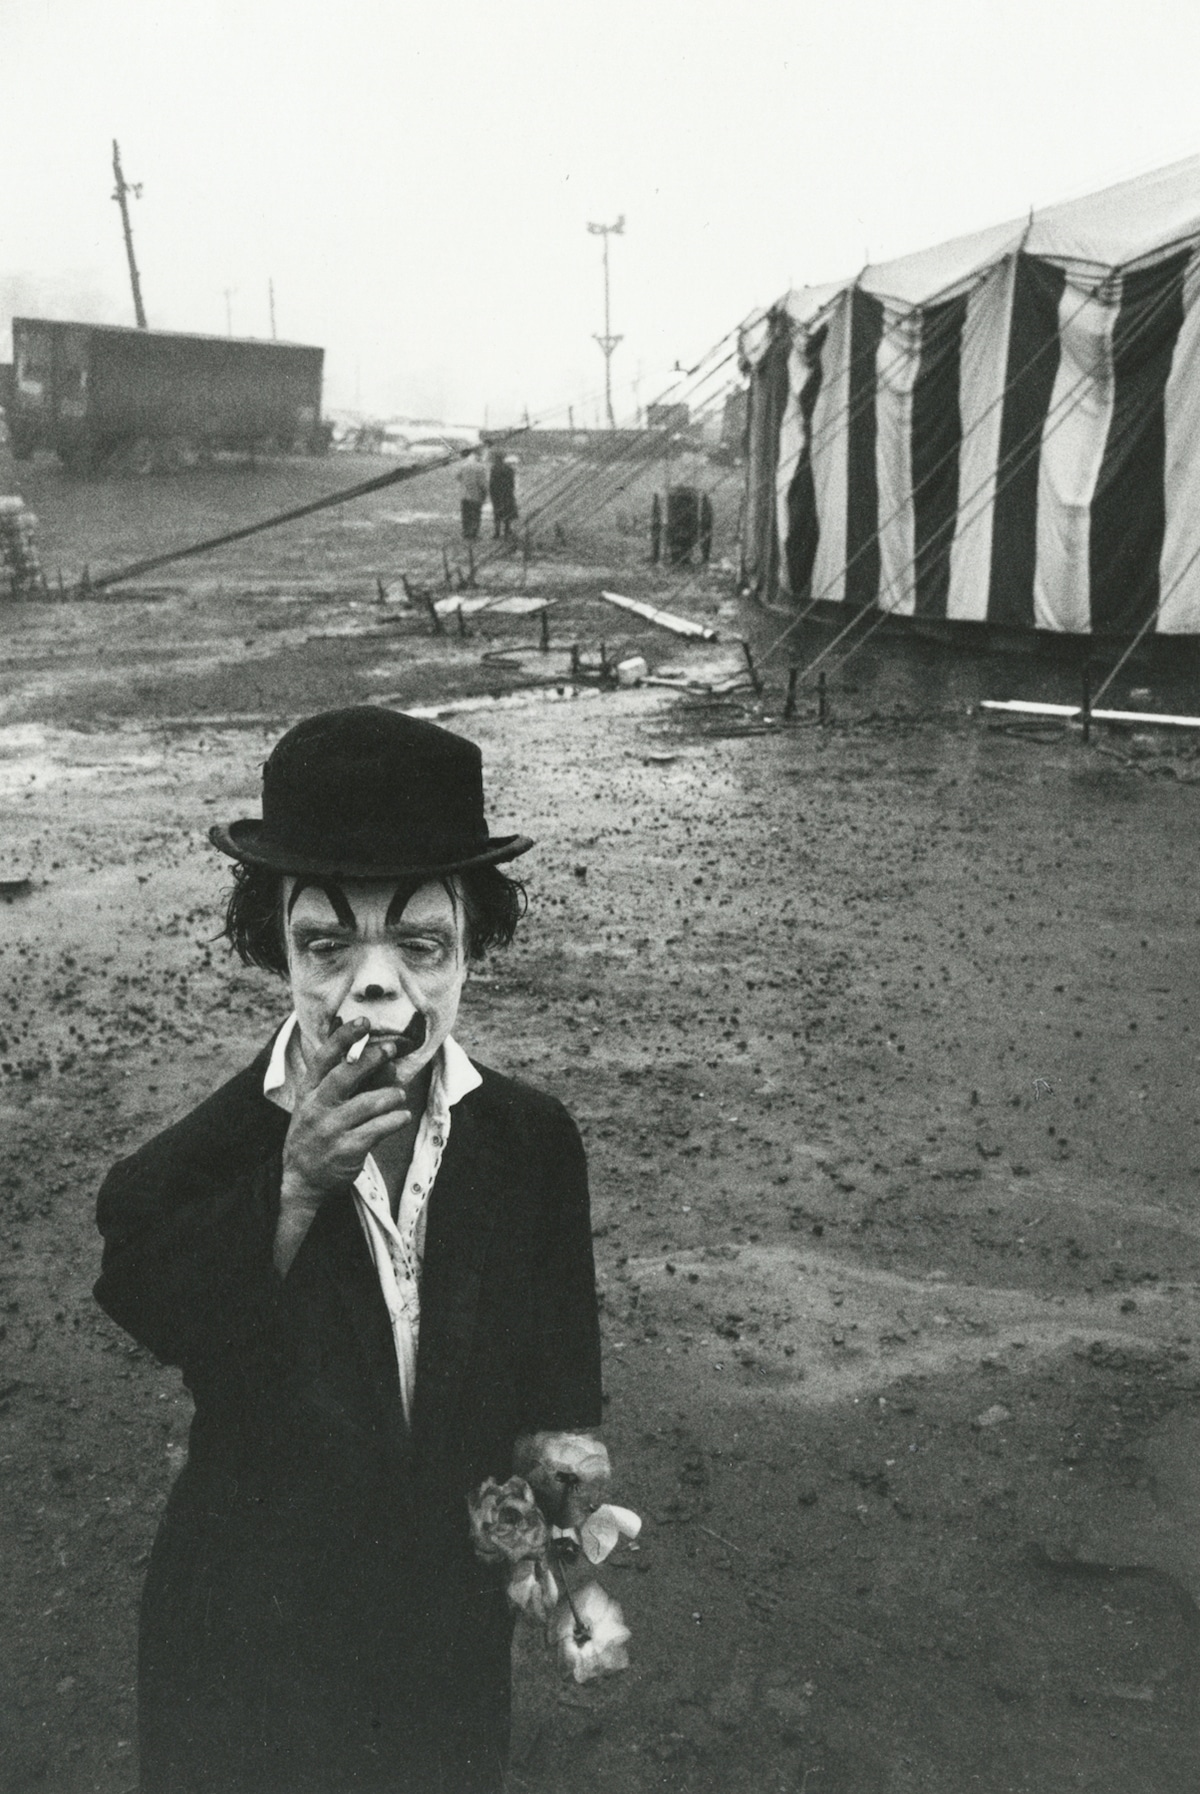 Historical Photos by Bruce Davidson